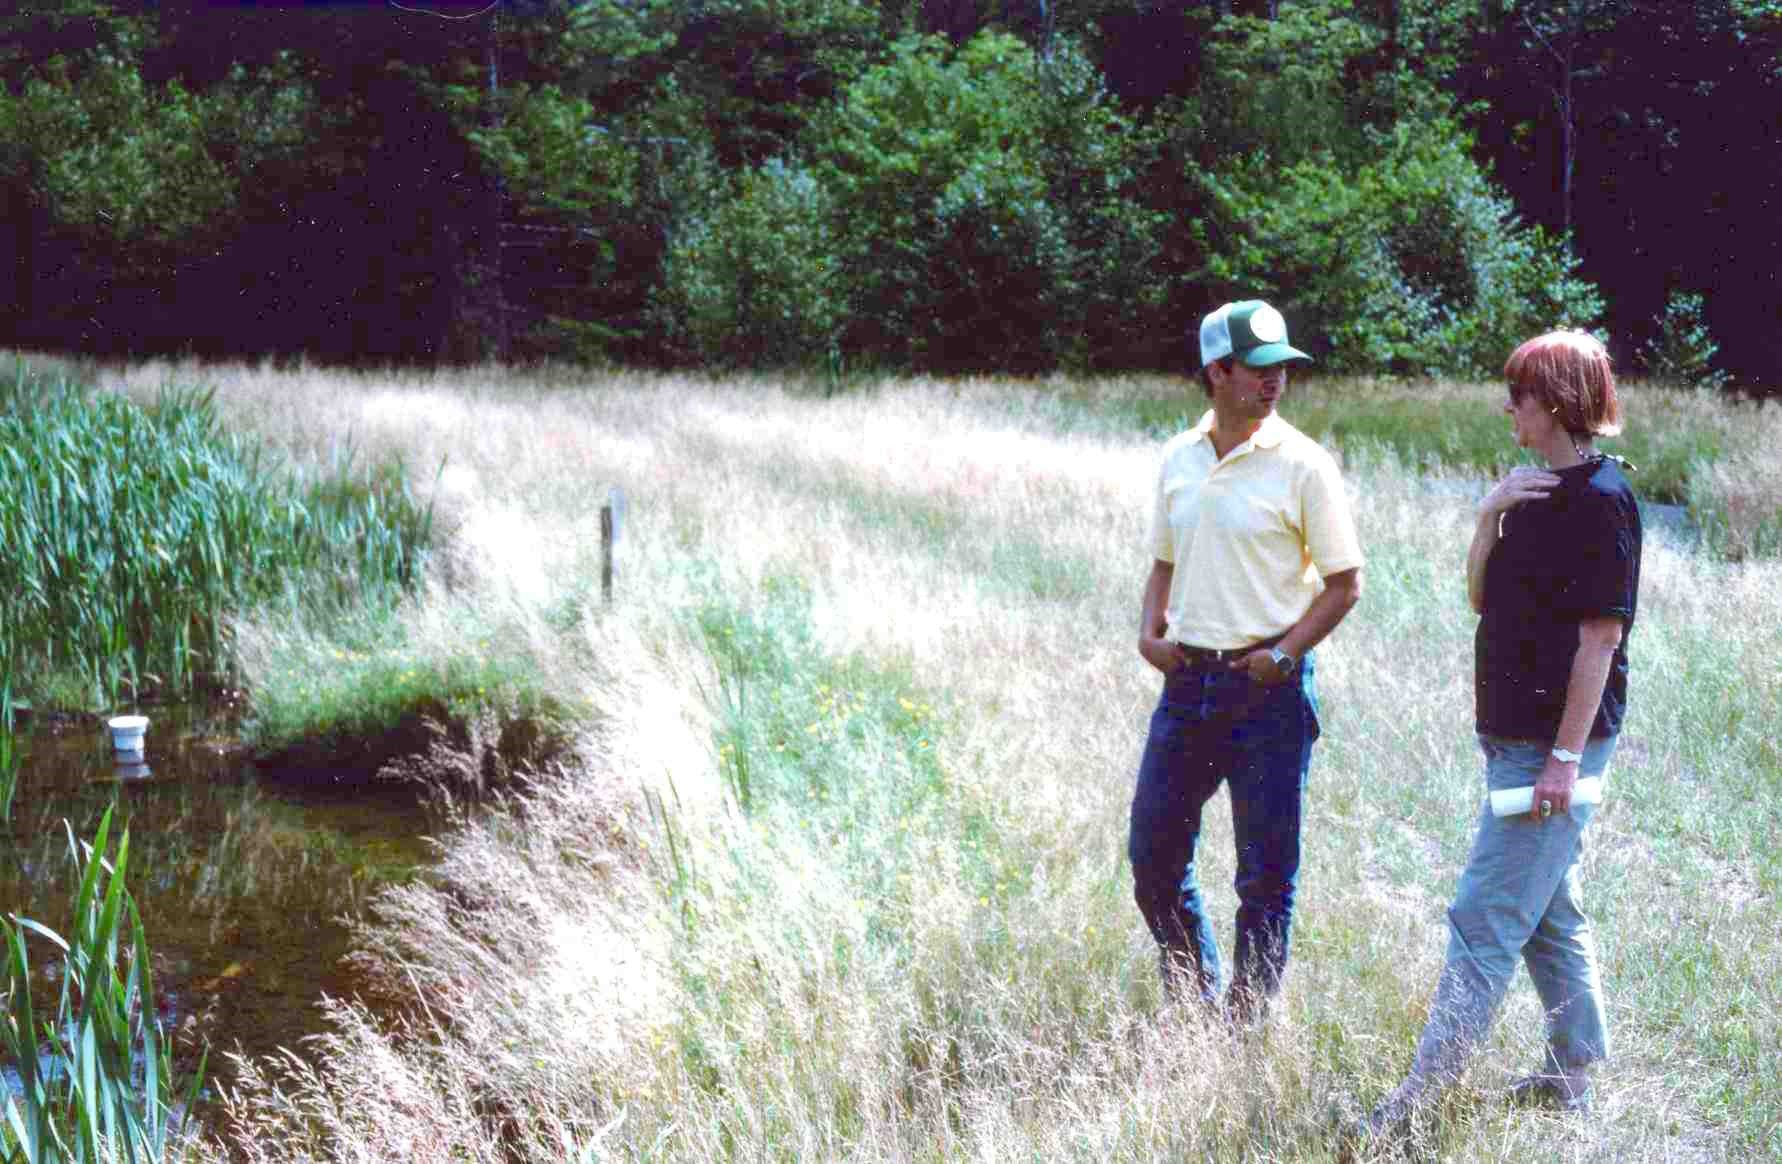 Luise Davis and Bob Hedin examining a wetland treatment system for acidic mine drainage, c.1992 (Photo by R. Brooks).